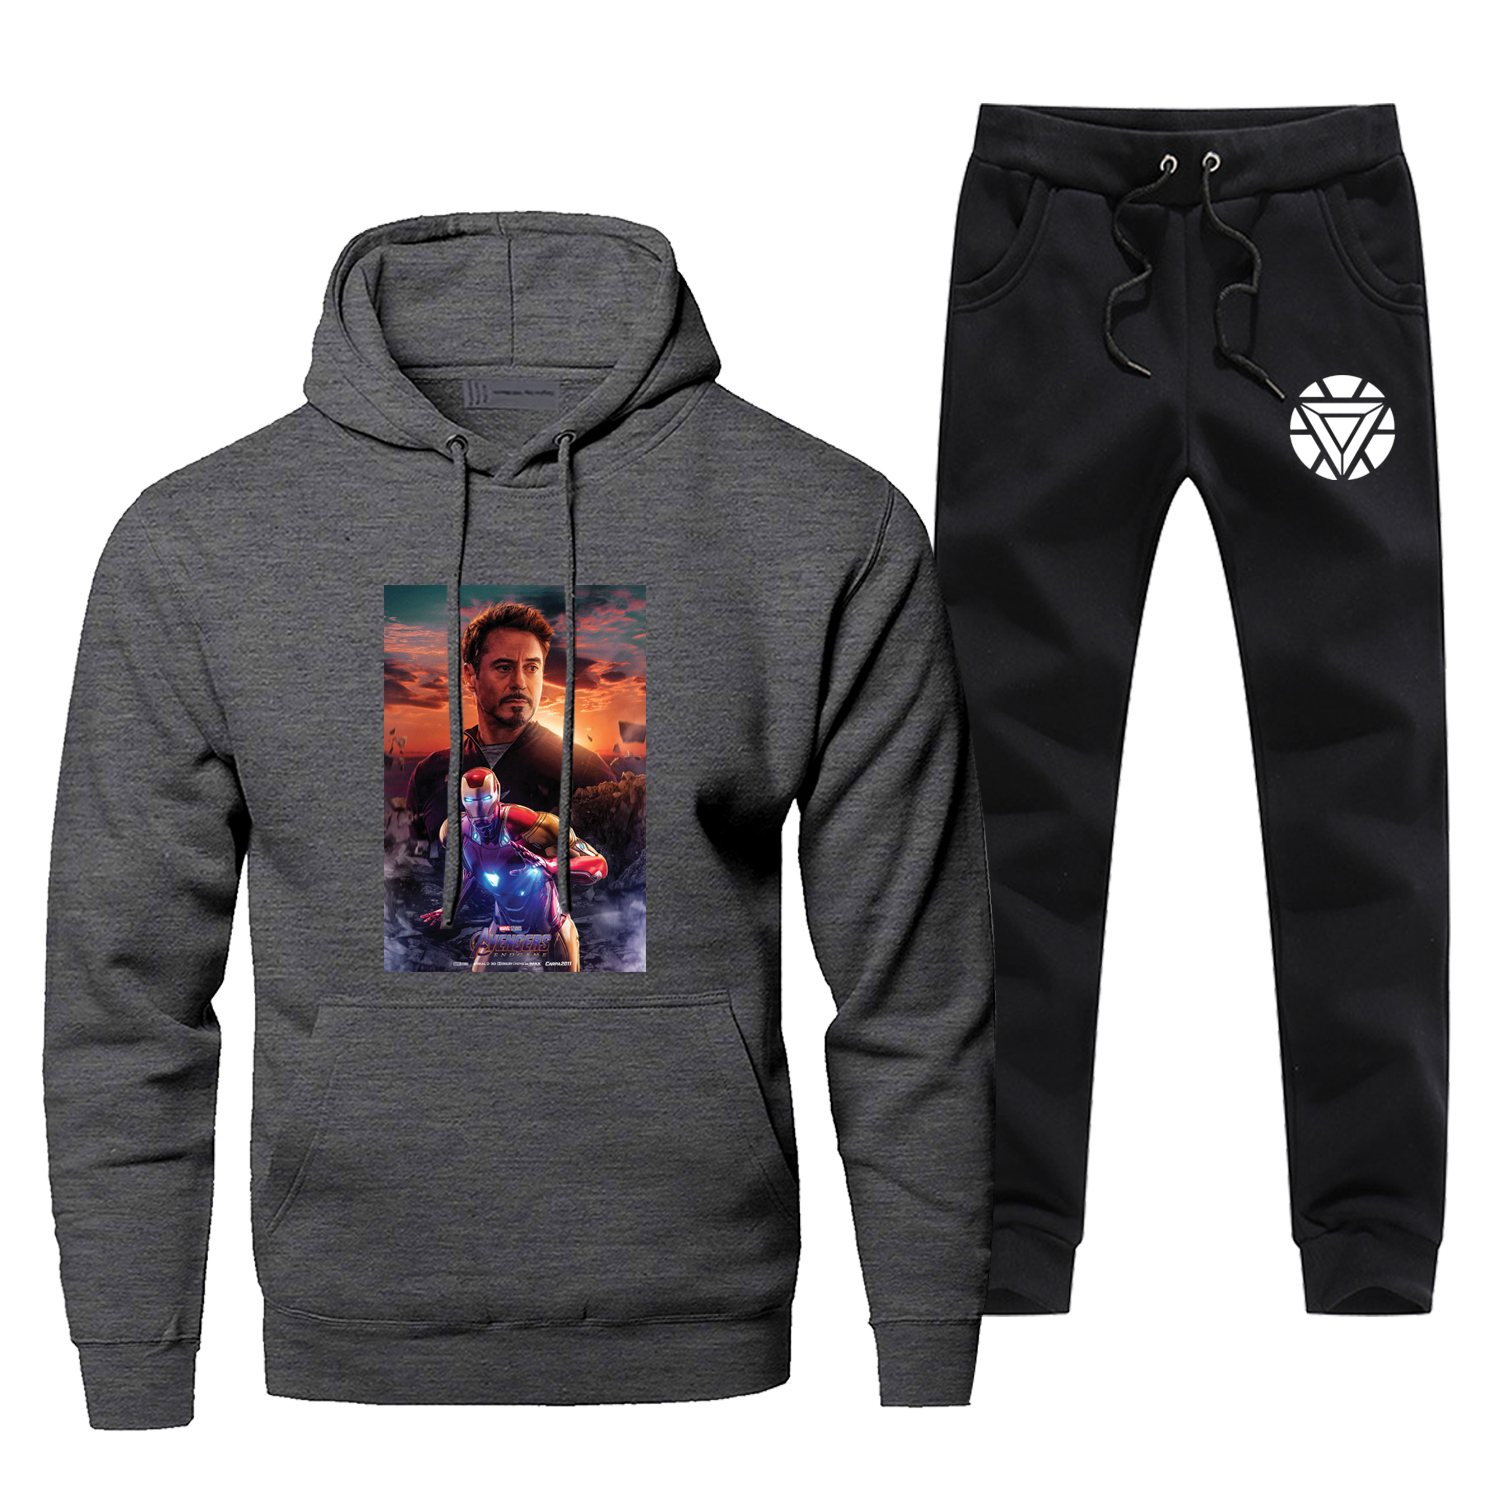 Avengers Hoodies Pants Set Men Super Hero Hoodie Sweatshirt Hoodies Iron Man Pollover 2Pcs Supehero Streetwear Male Sweatshirts